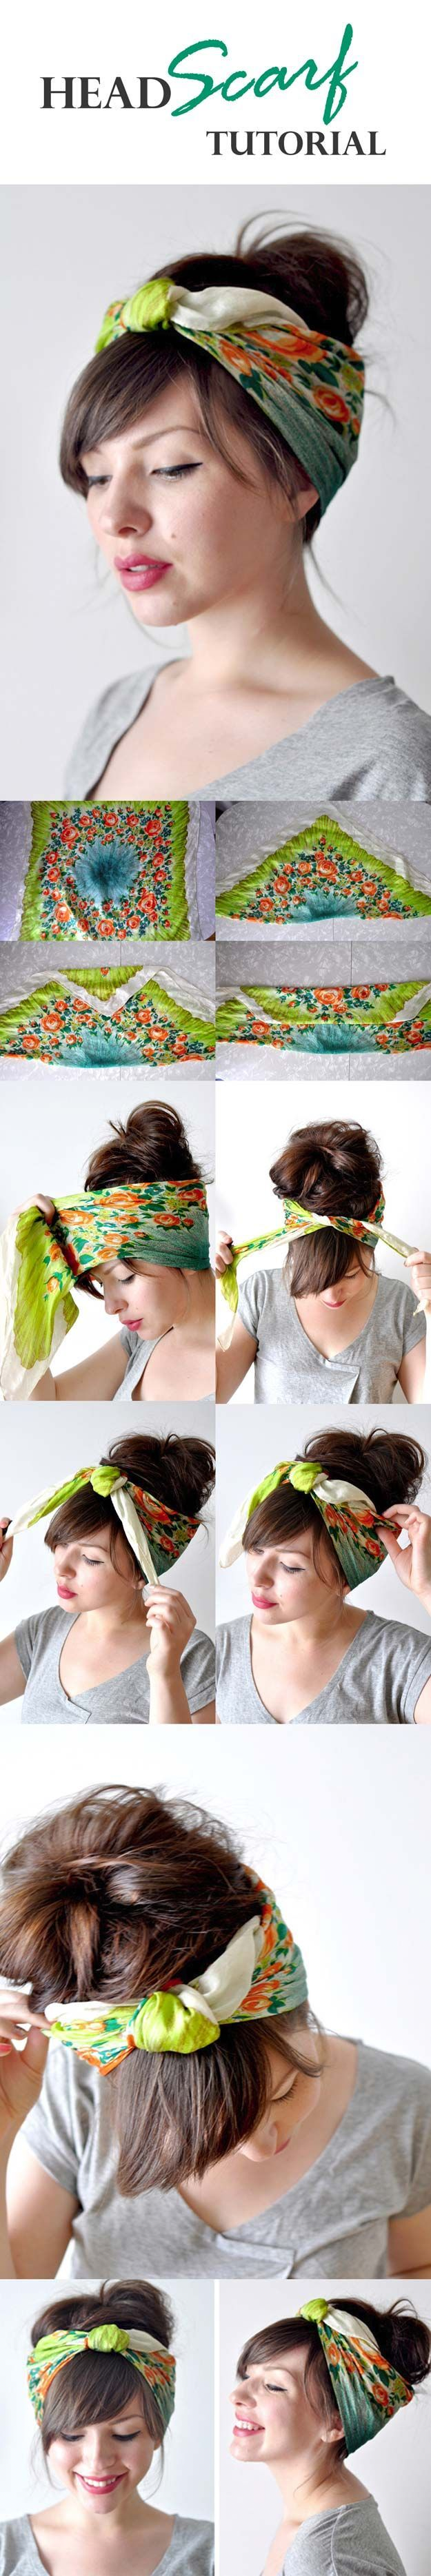 Festival Hair Tutorials - HEAD SCARF TUTORIAL - Short Quick and Easy Tutorial Guides and How Tos for Braids, Curly Hair, Long Hair, Medium Hair, and that Perfect Updo - Great Ideas for That Summer Music Edm Show, Whether It's A New Hair Color or Some Awes